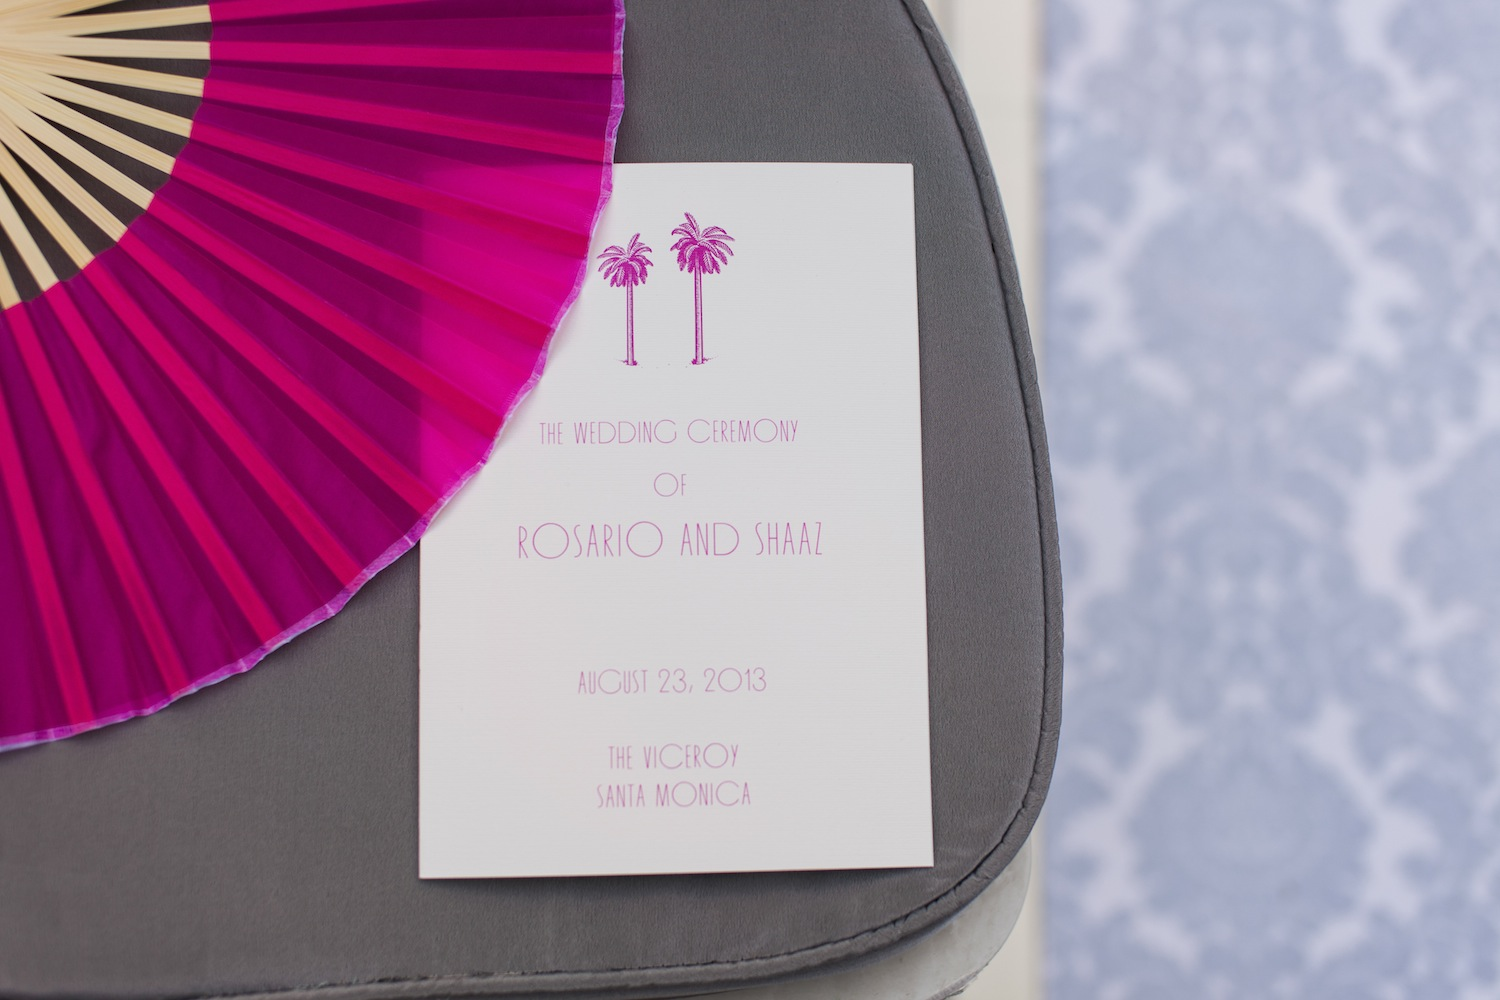 Fuchsia fan and wedding ceremony program